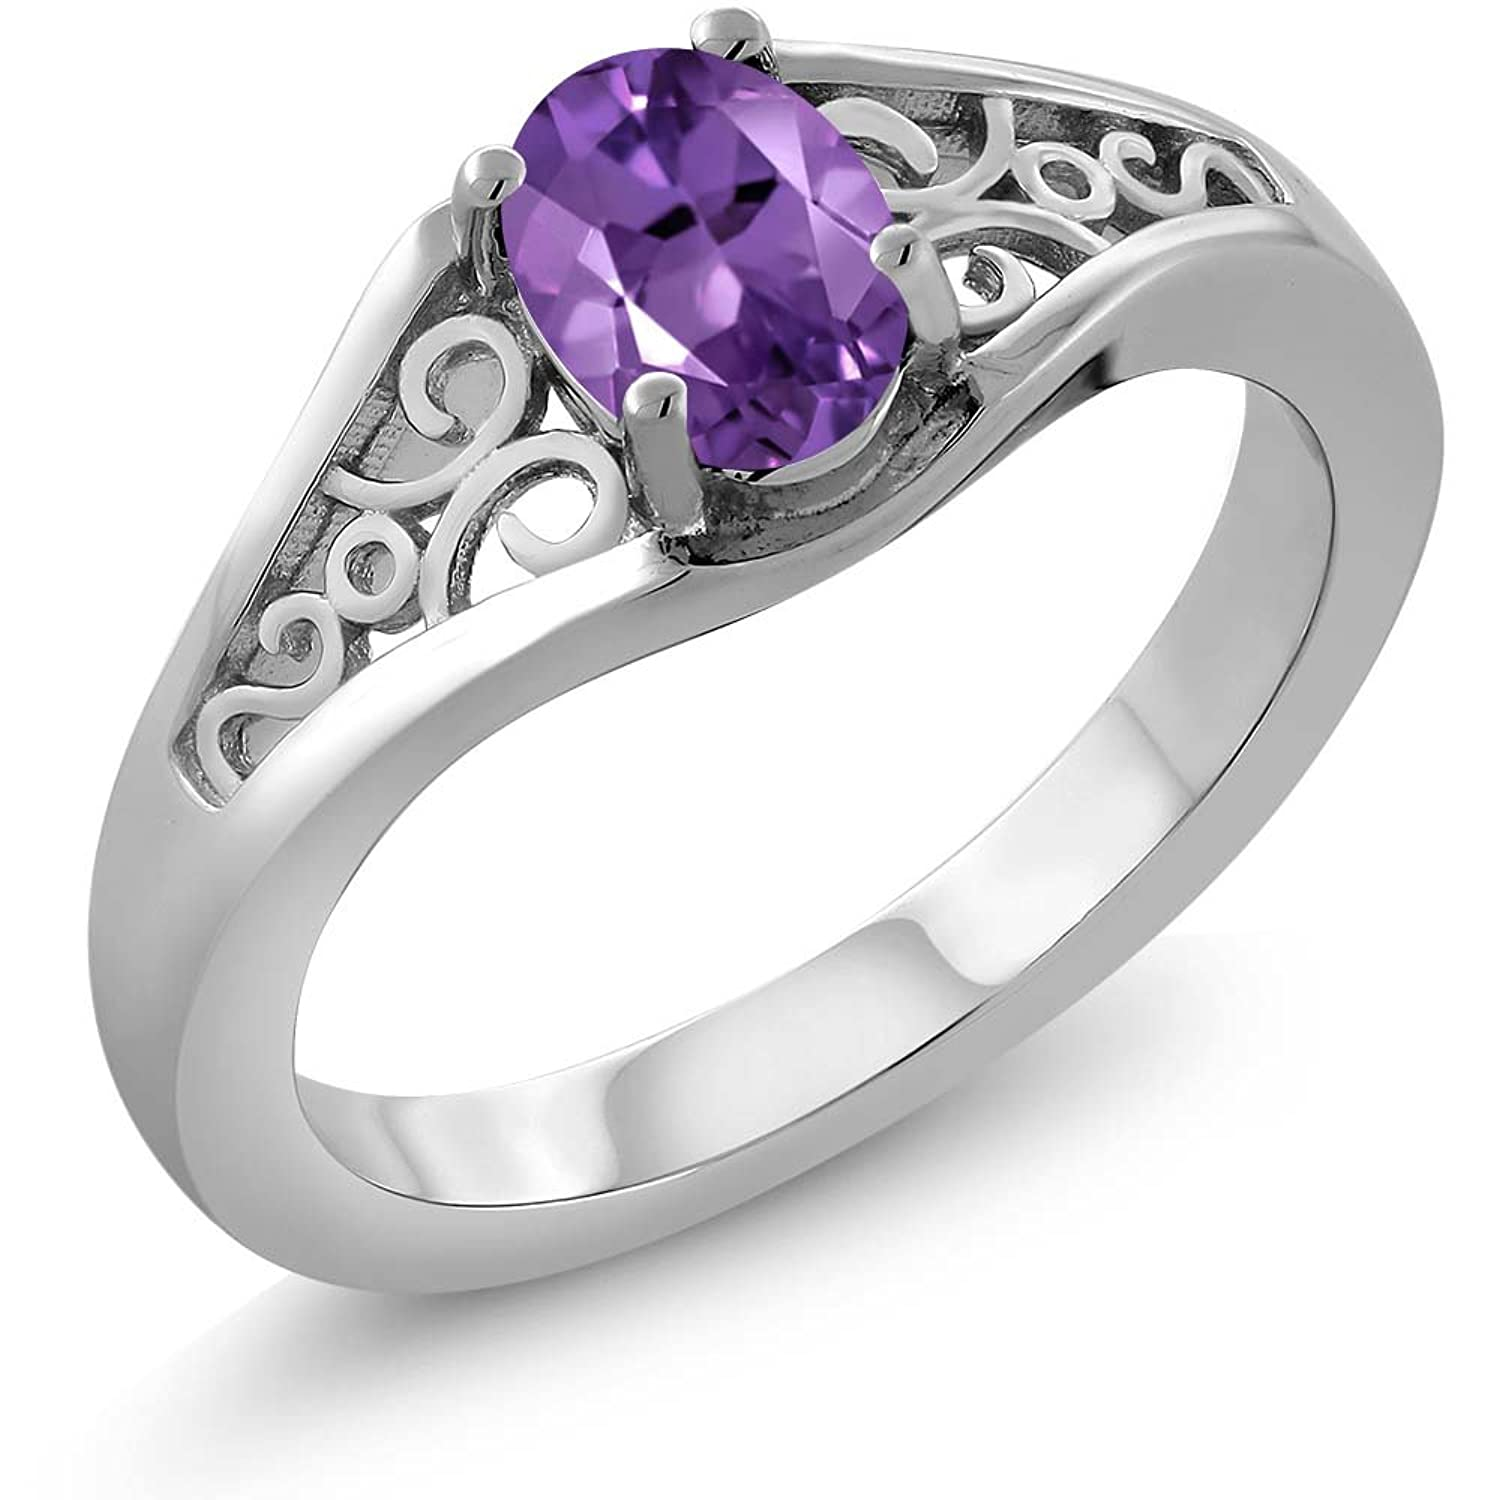 0.75 Ct Oval Purple Amethyst Gemstone Birthstone 925 Sterling Silver Jewelry Women's Ring (Available in size 5, 6, 7, 8, 9)